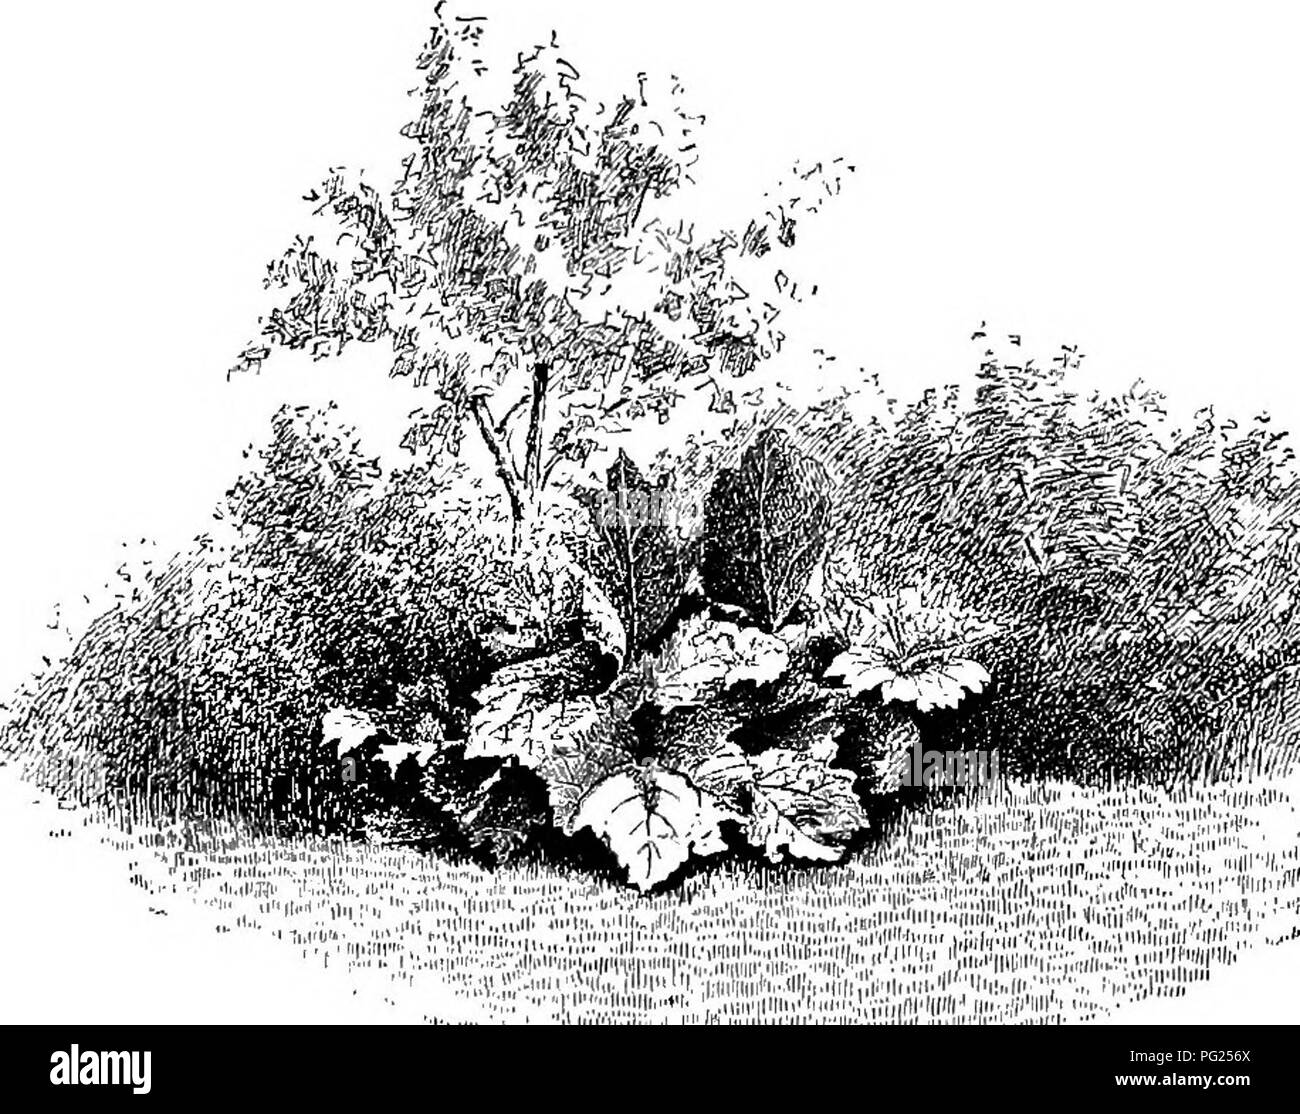 . Manual of gardening : a practical guide to the making of home grounds and the growing of flowers, fruits, and vegetables for home use . Gardening. THE GENERAL PLAN OR THEORY OF THE PLACE 39 grow to few or single stems, and they are sparse and scraggly inform; but once given all the room they want and a good soil, they become luxurious, full, and comely. In most home grounds in the country the body of the planting may be very effectively composed of bushes taken from the adjacent woods and fields. The masses may then be enlivened by the addi- tion here and there of cultivated bushes, and the  - Stock Image